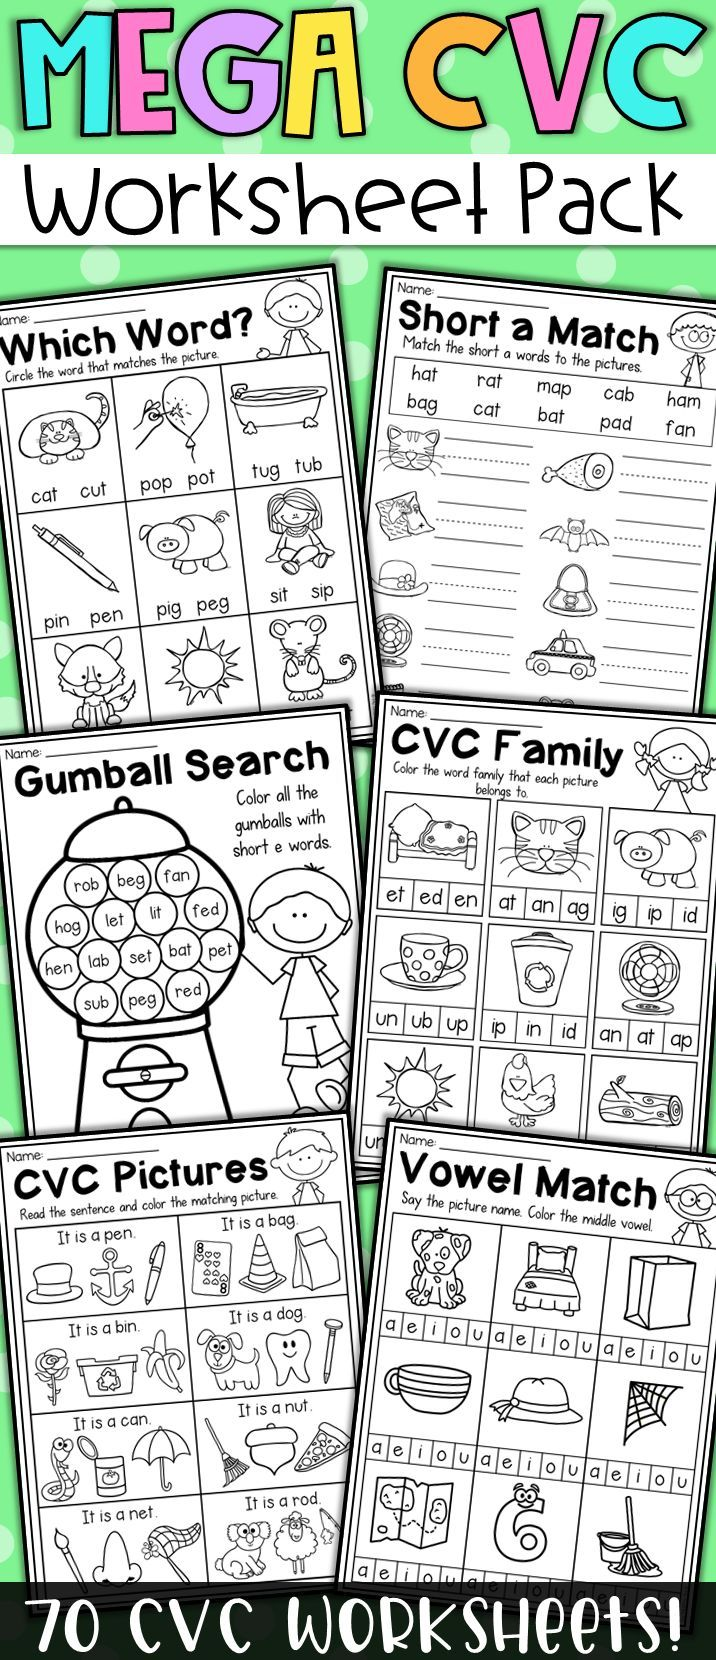 This Packet Is Filled With Piles Of Fun Cvc Worksheets To Help Students Practice And Master Short Vowel Words T Cvc Words Reading Cvc Words Spelling Cvc Words [ 1660 x 716 Pixel ]